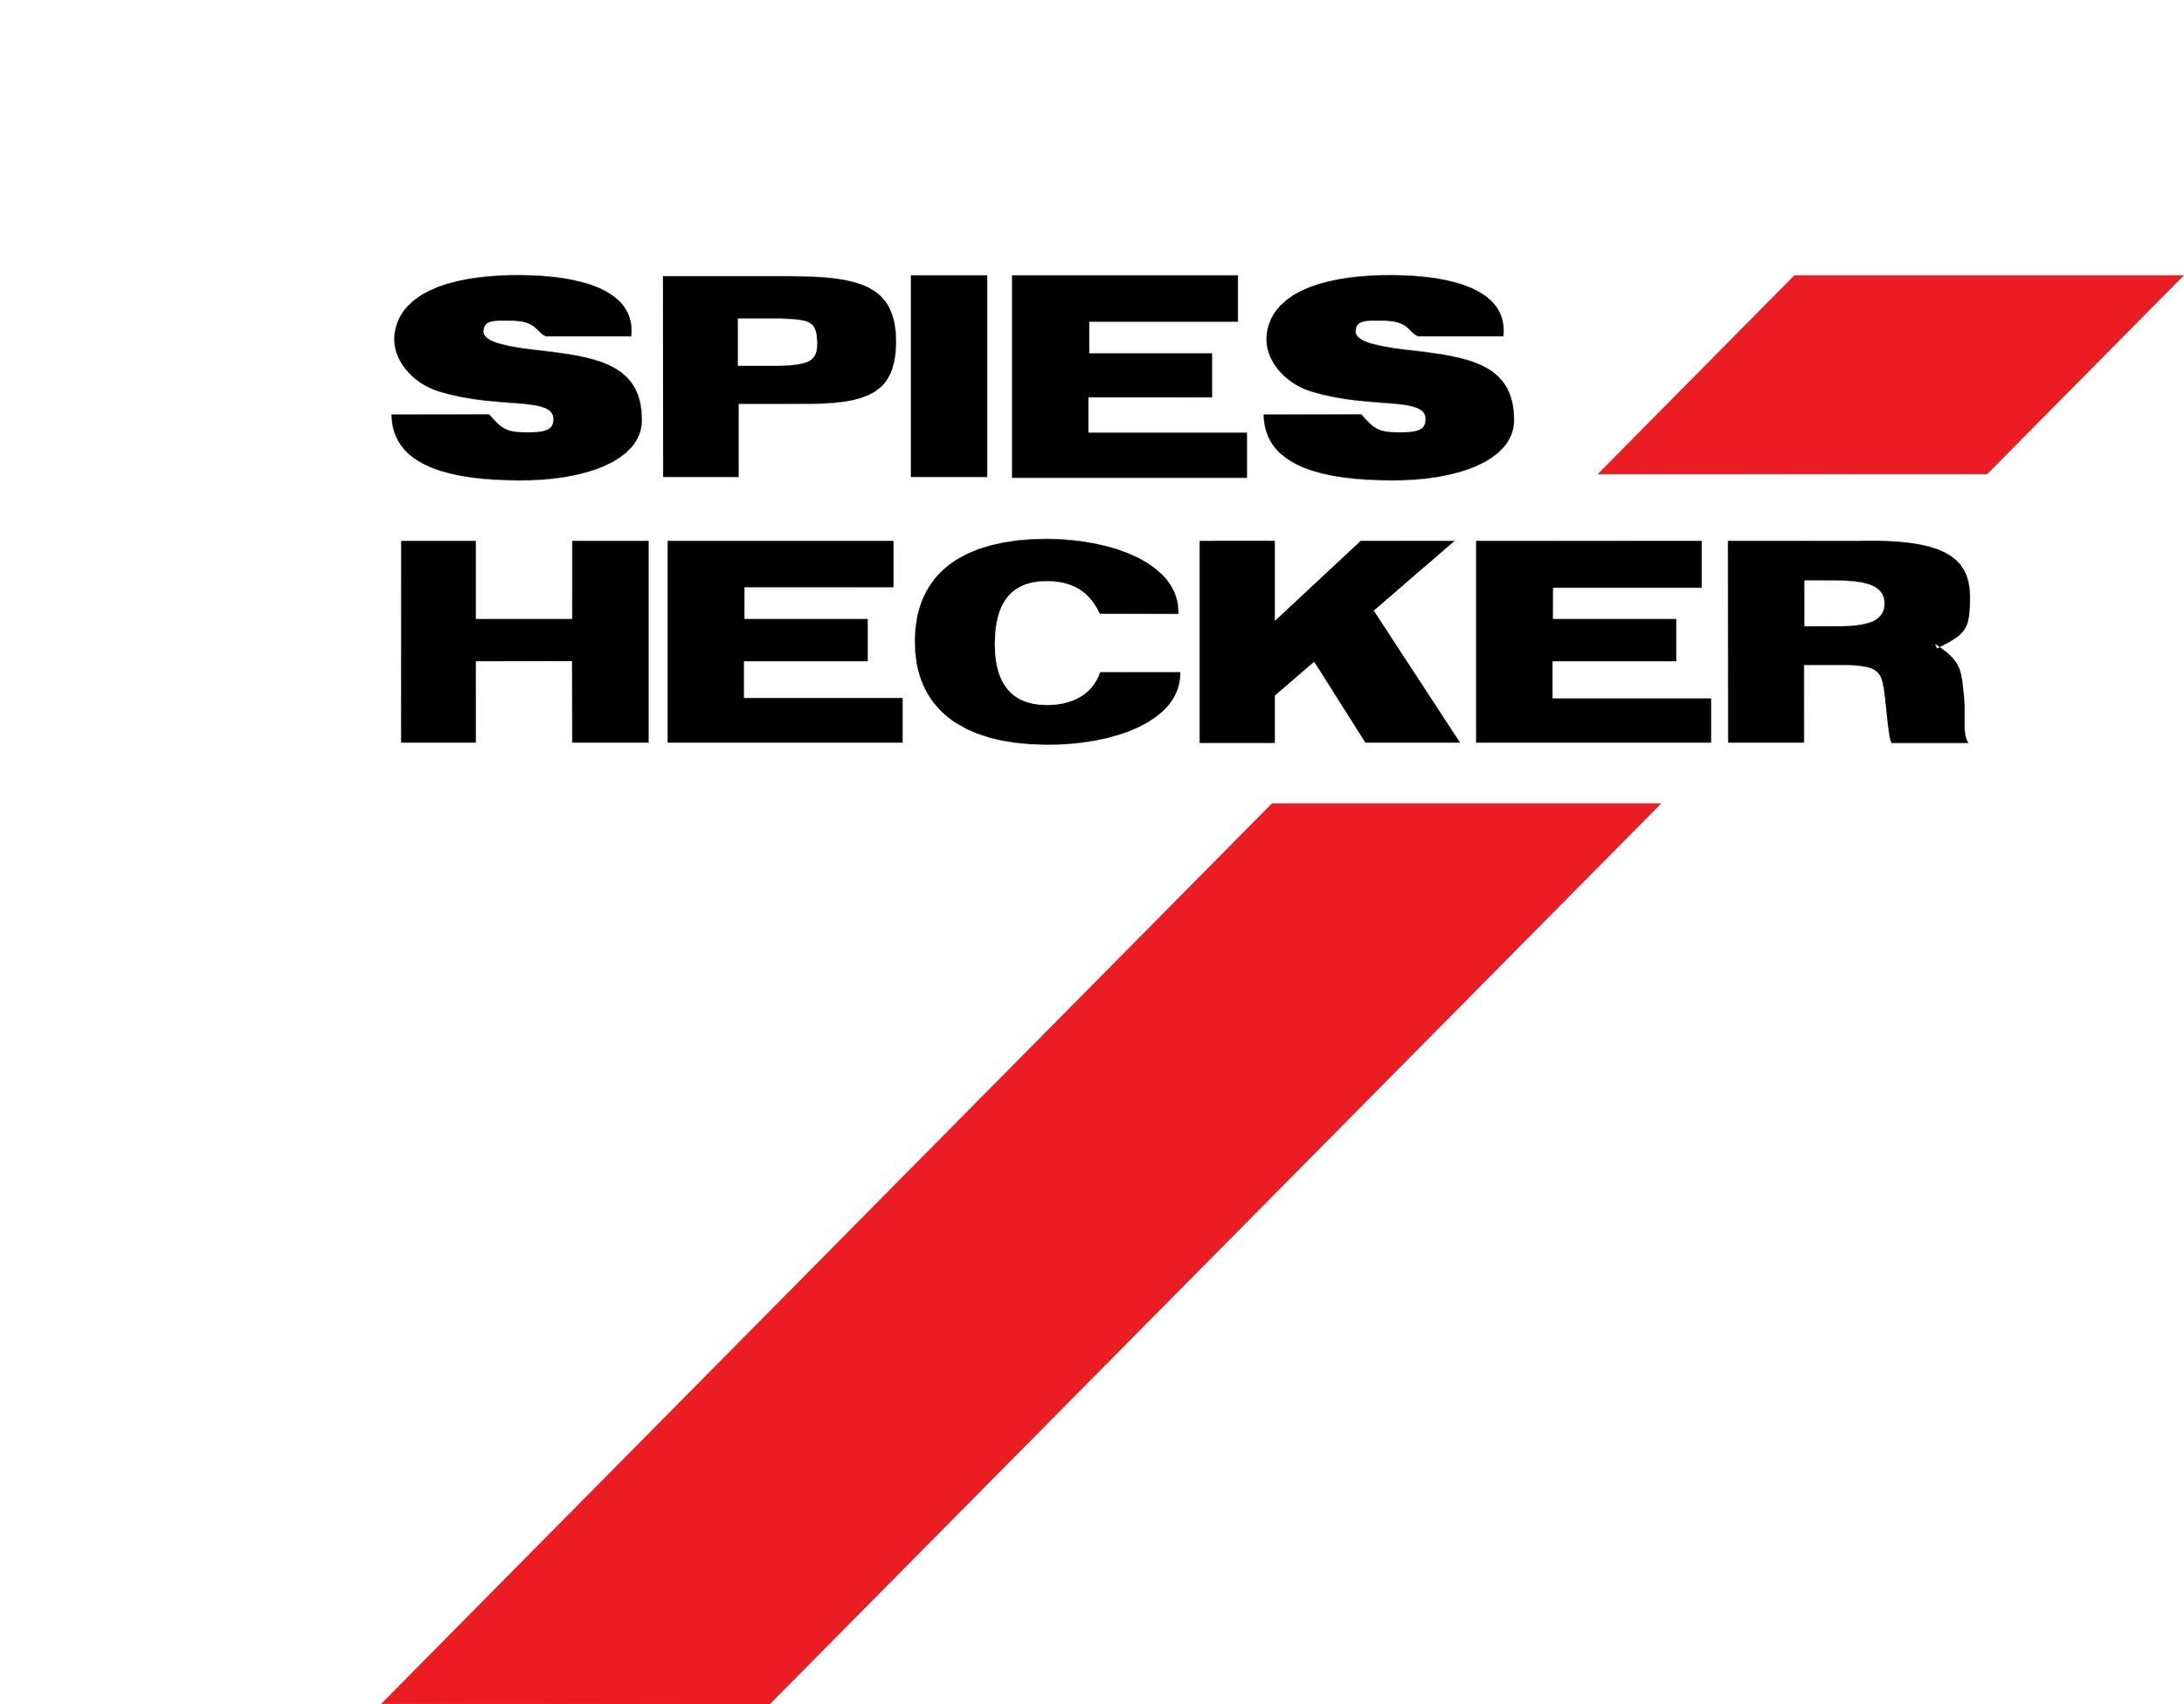 Spies Hecker auto paint.jpg